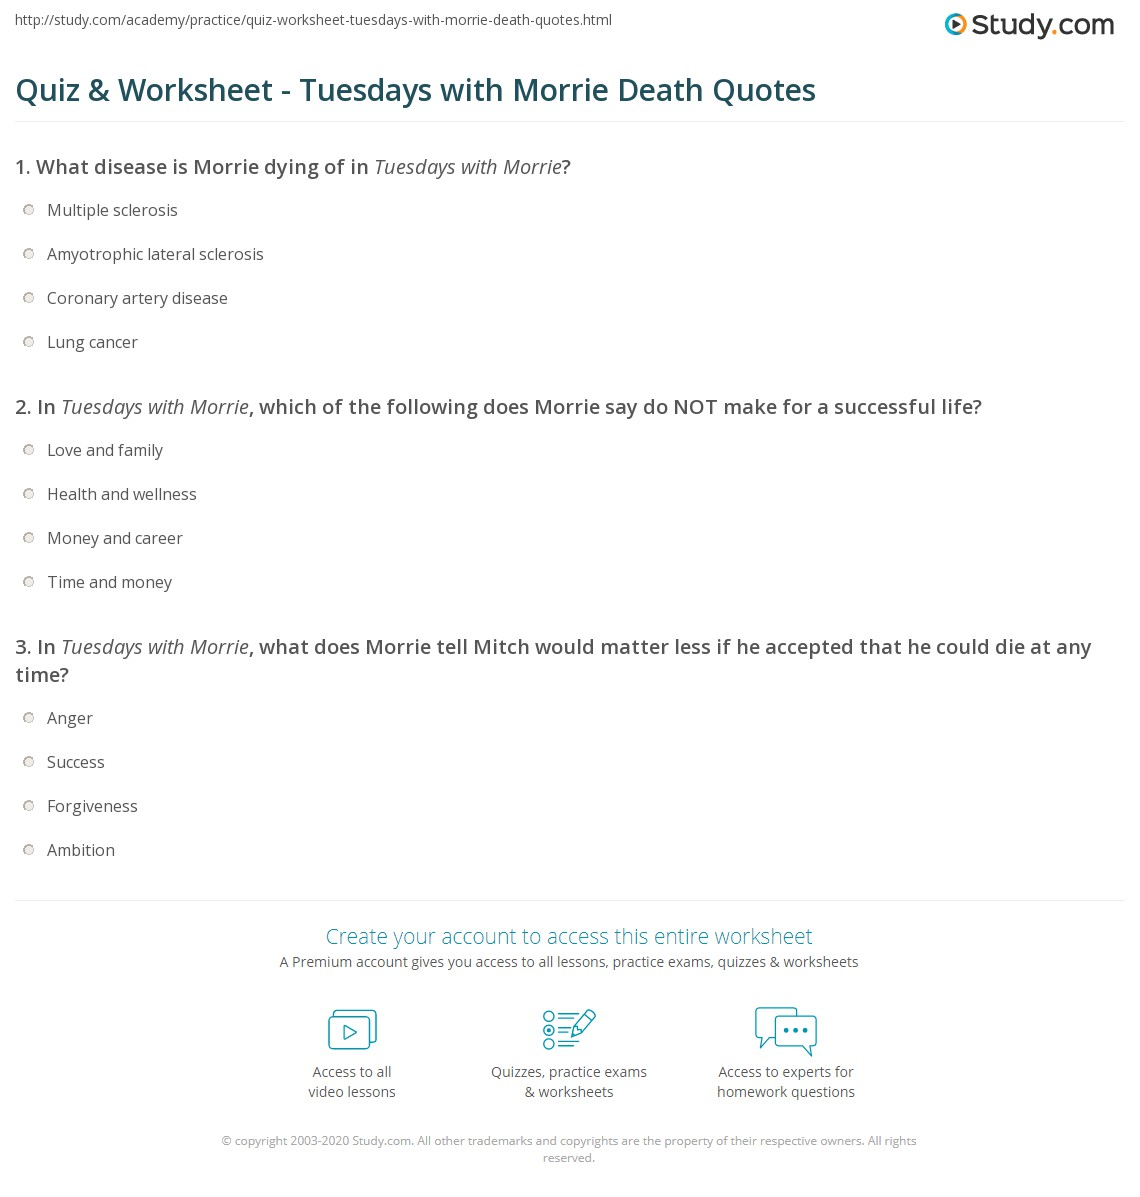 Tuesday With Morrie Quotes Quiz & Worksheet  Tuesdays With Morrie Death Quotes  Study